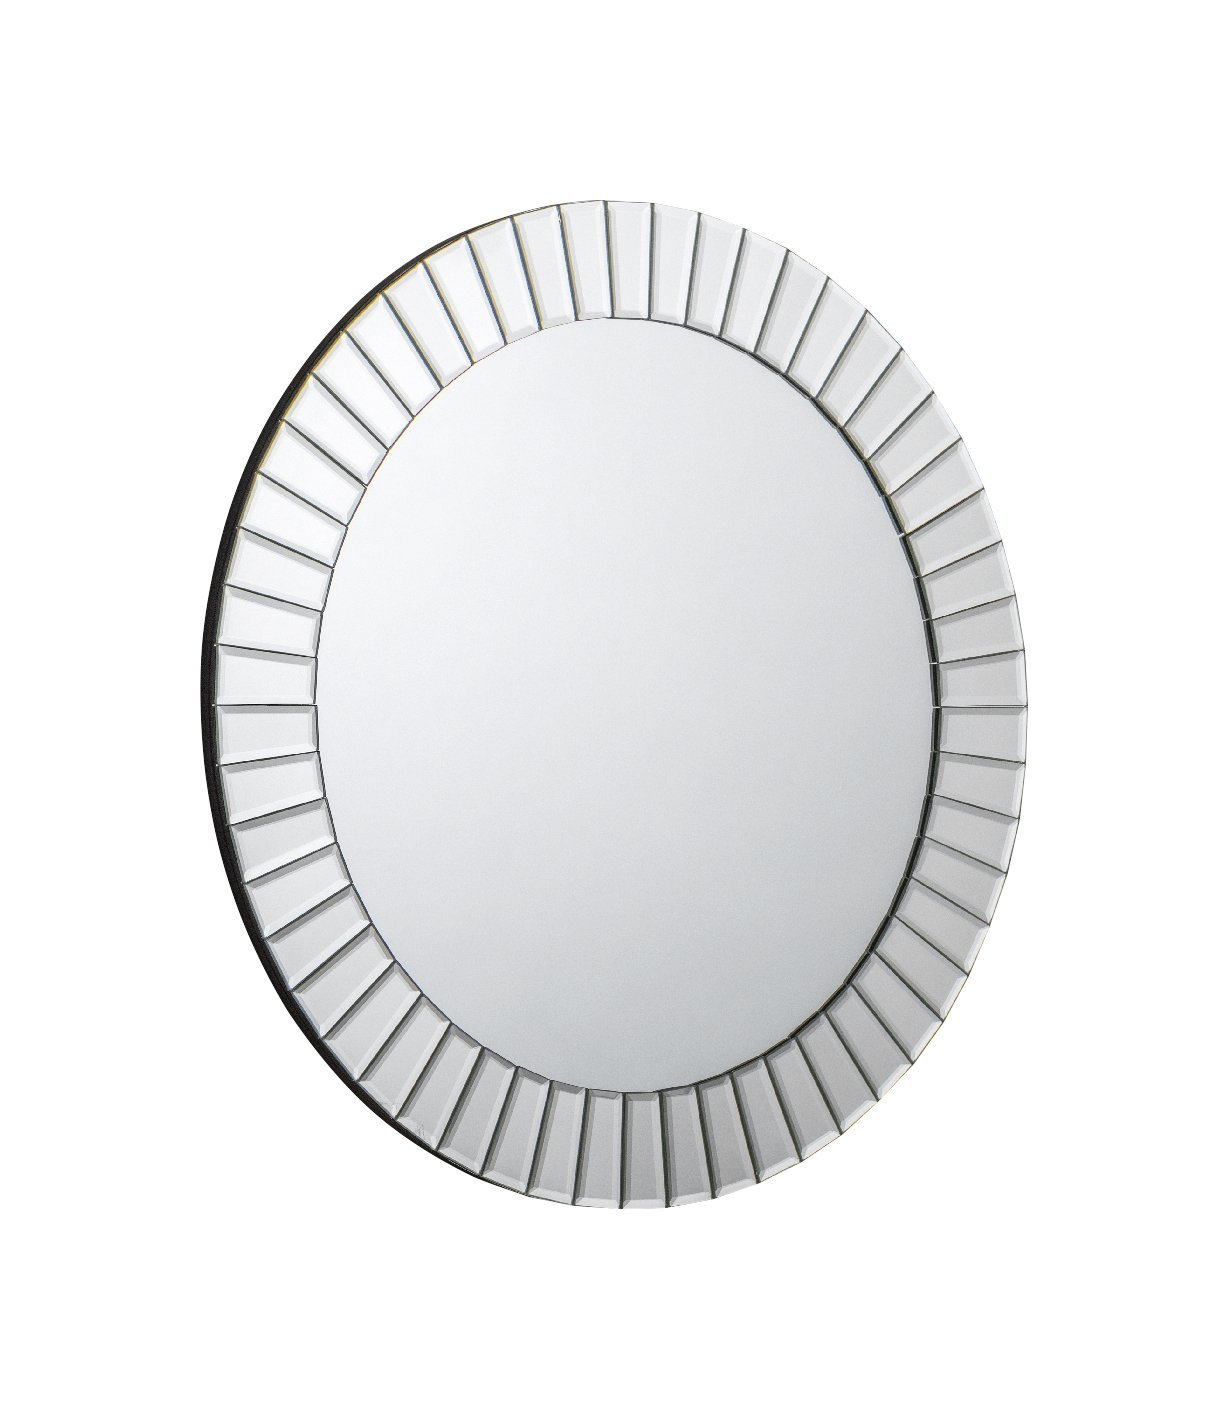 Julian Bowen MIR005 Sonata Round Wall Hanging Dress Mirror, Hardwood, Bevelled Glass - SIlver